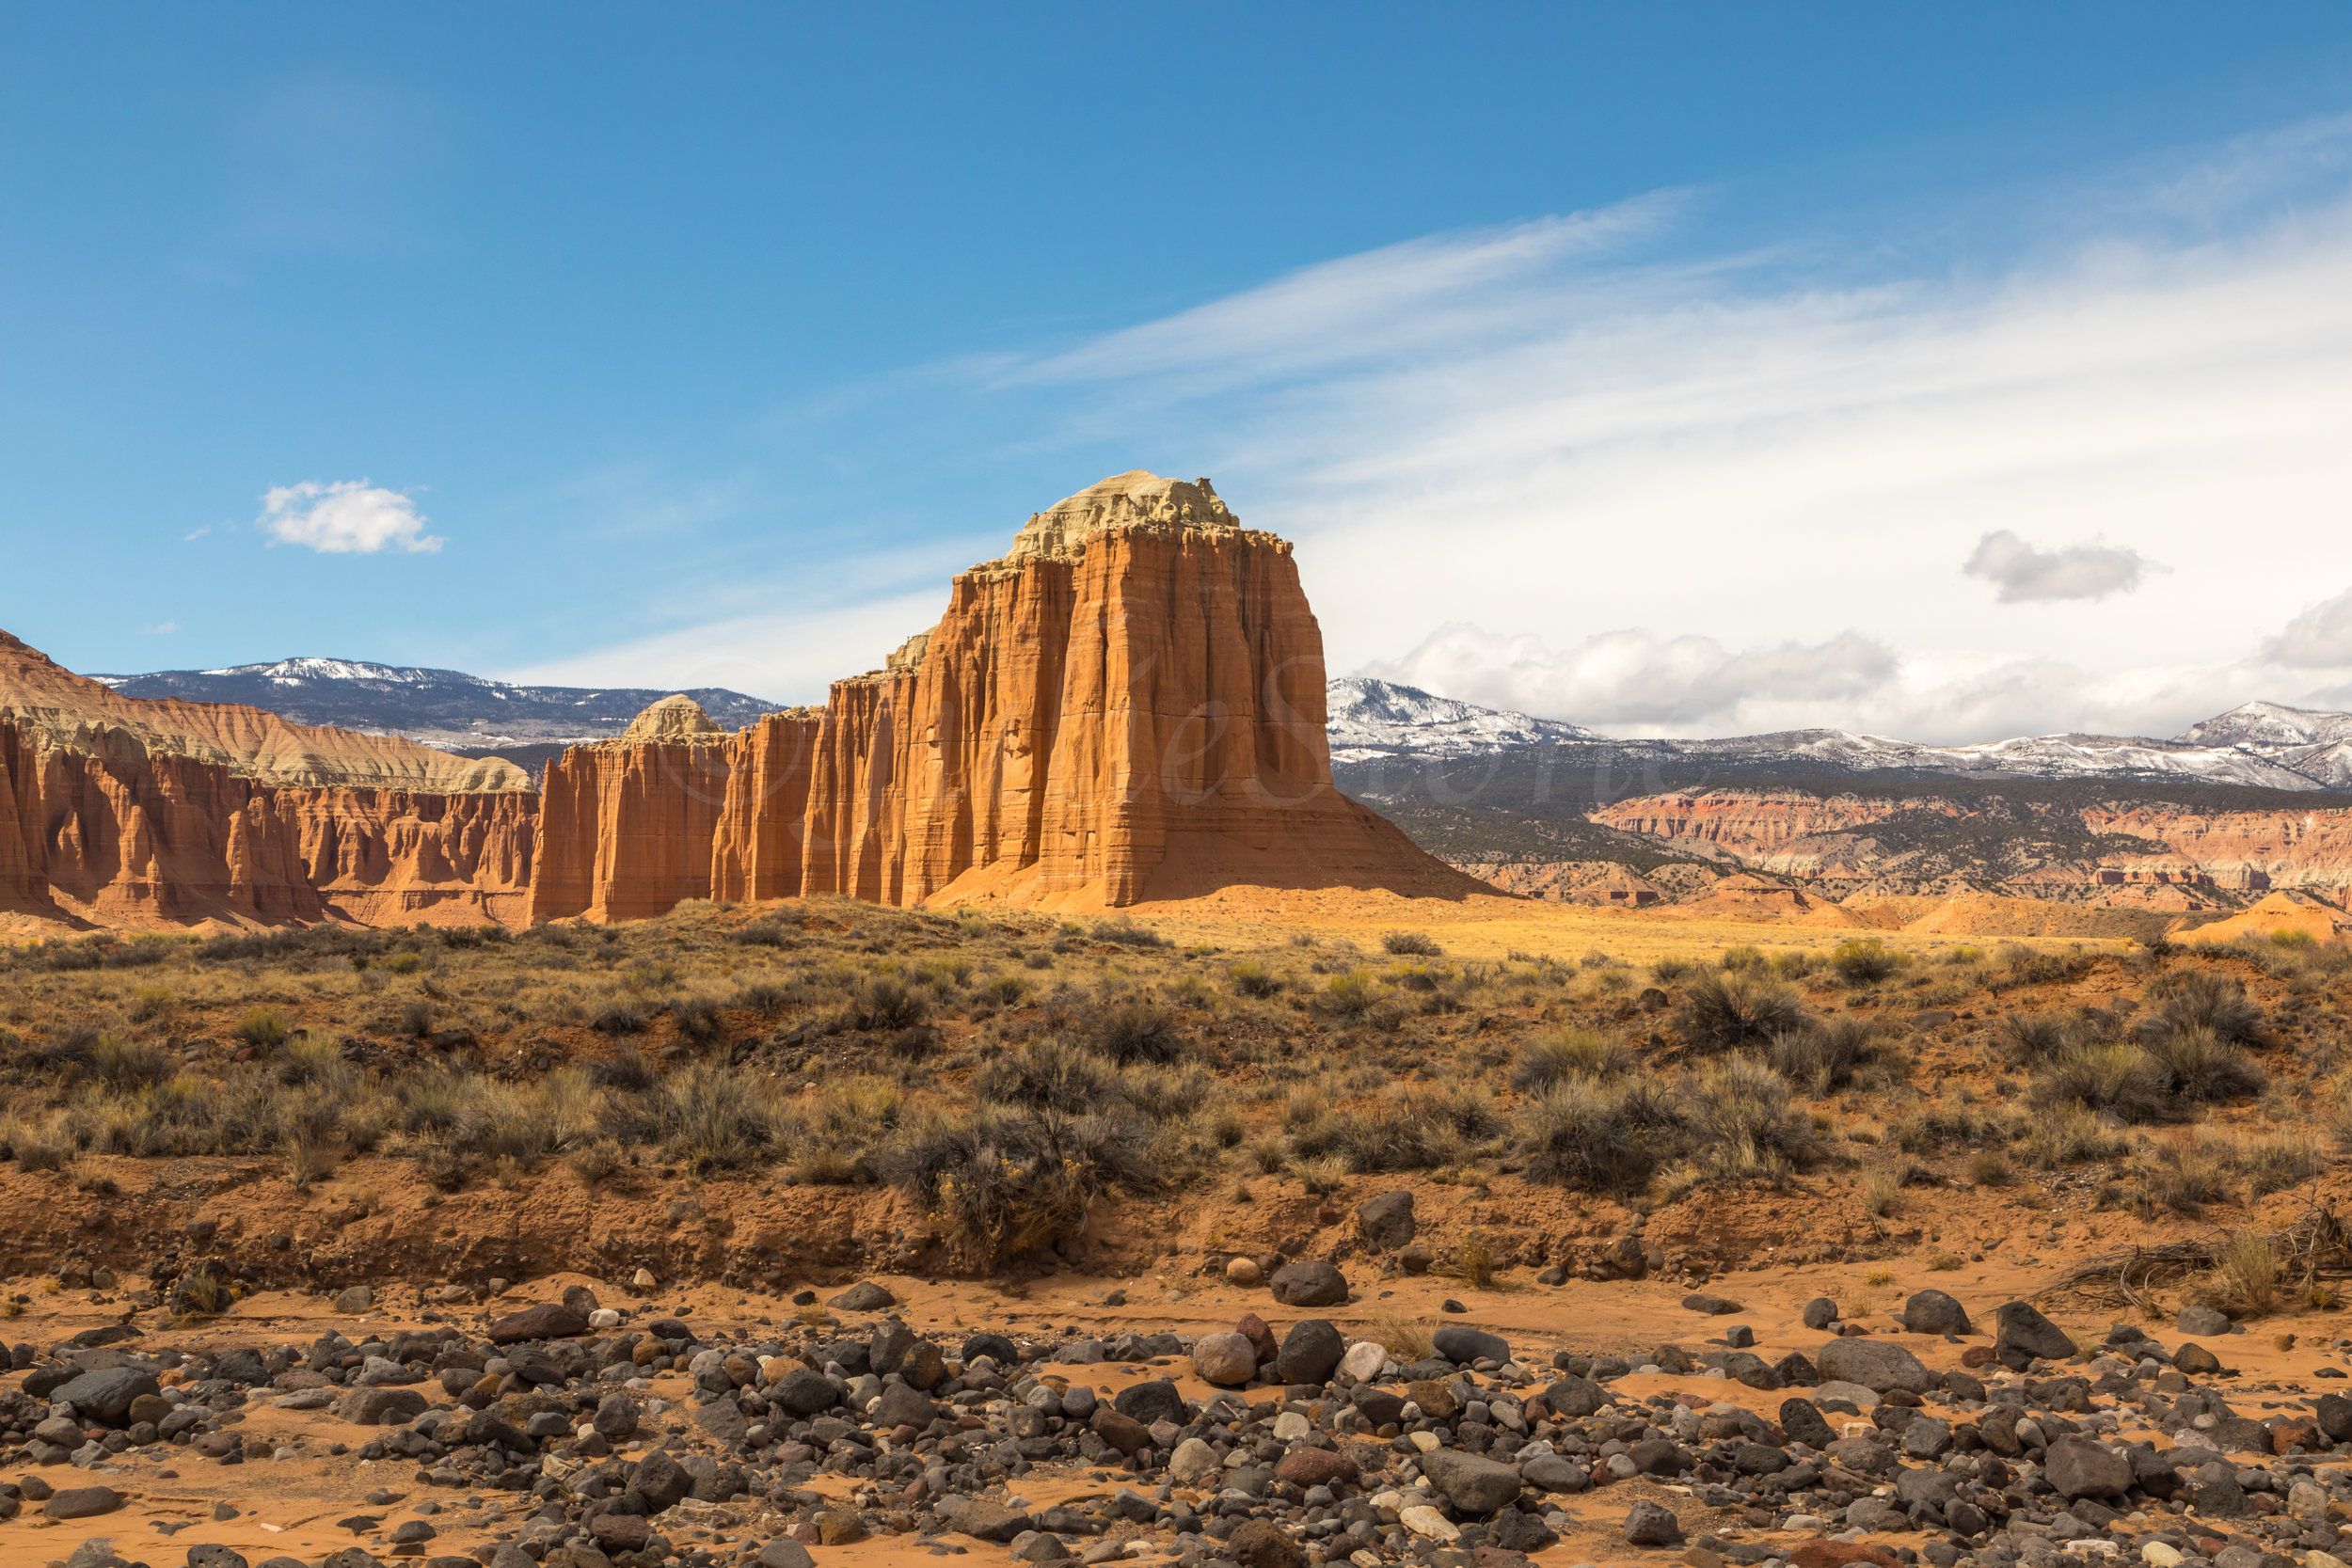 Capitol Reef National Park, Image # 1918